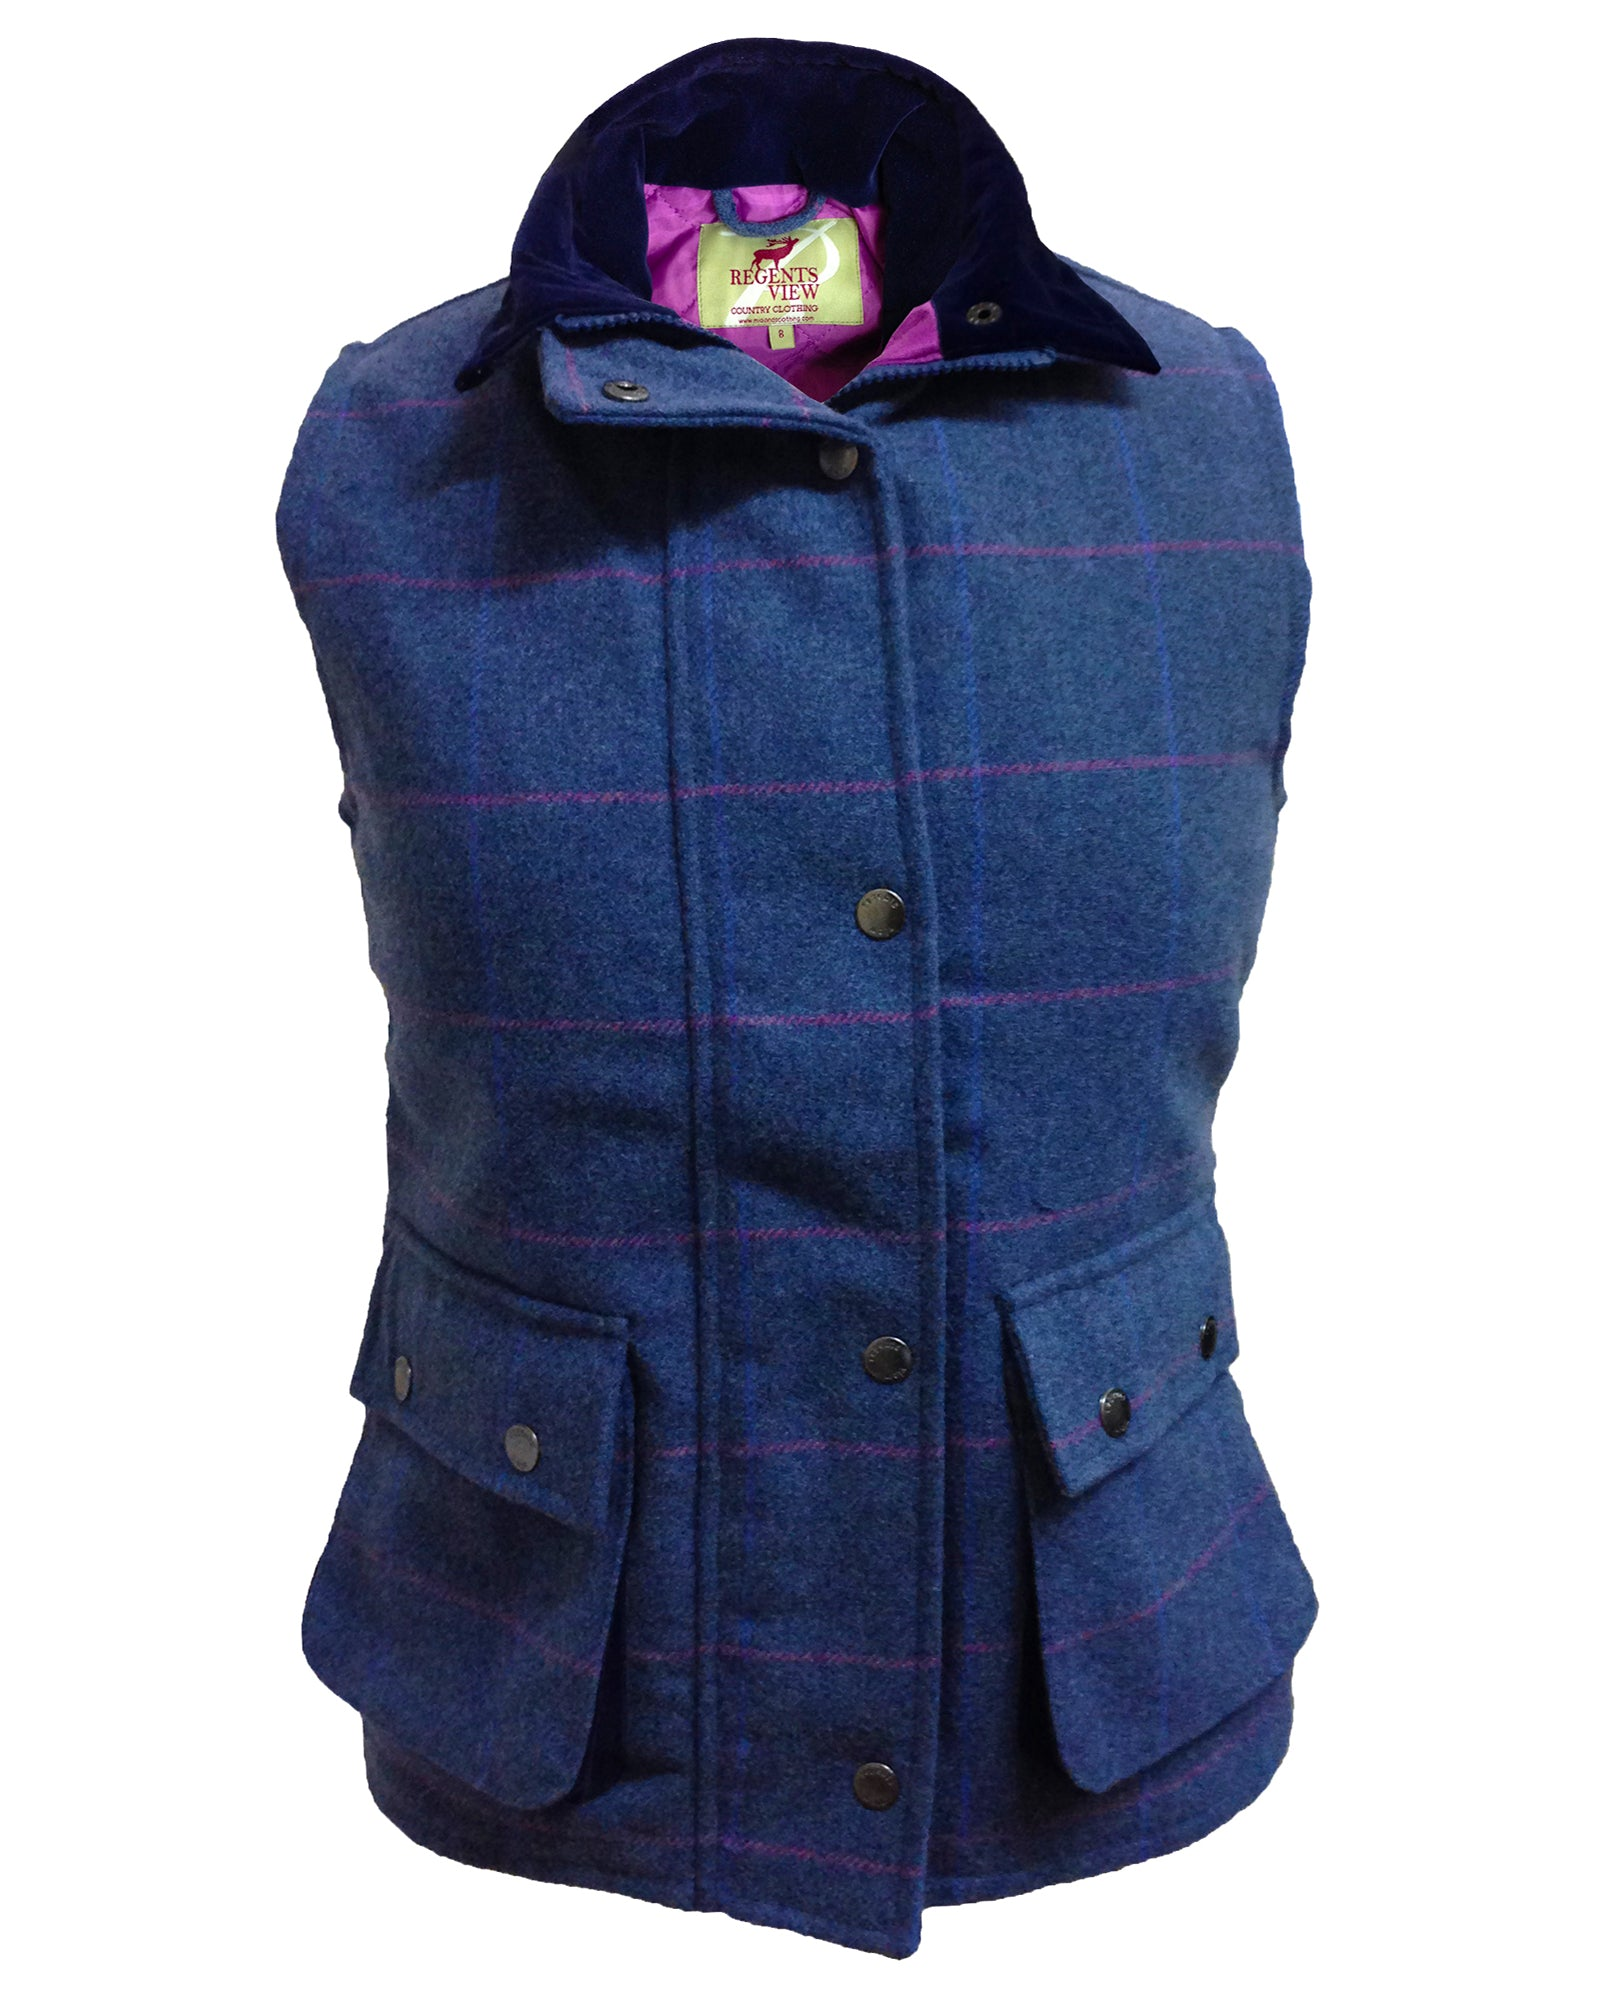 Regents View Women Diamond Quilted Premium Tweed Bodywarmer - Blue